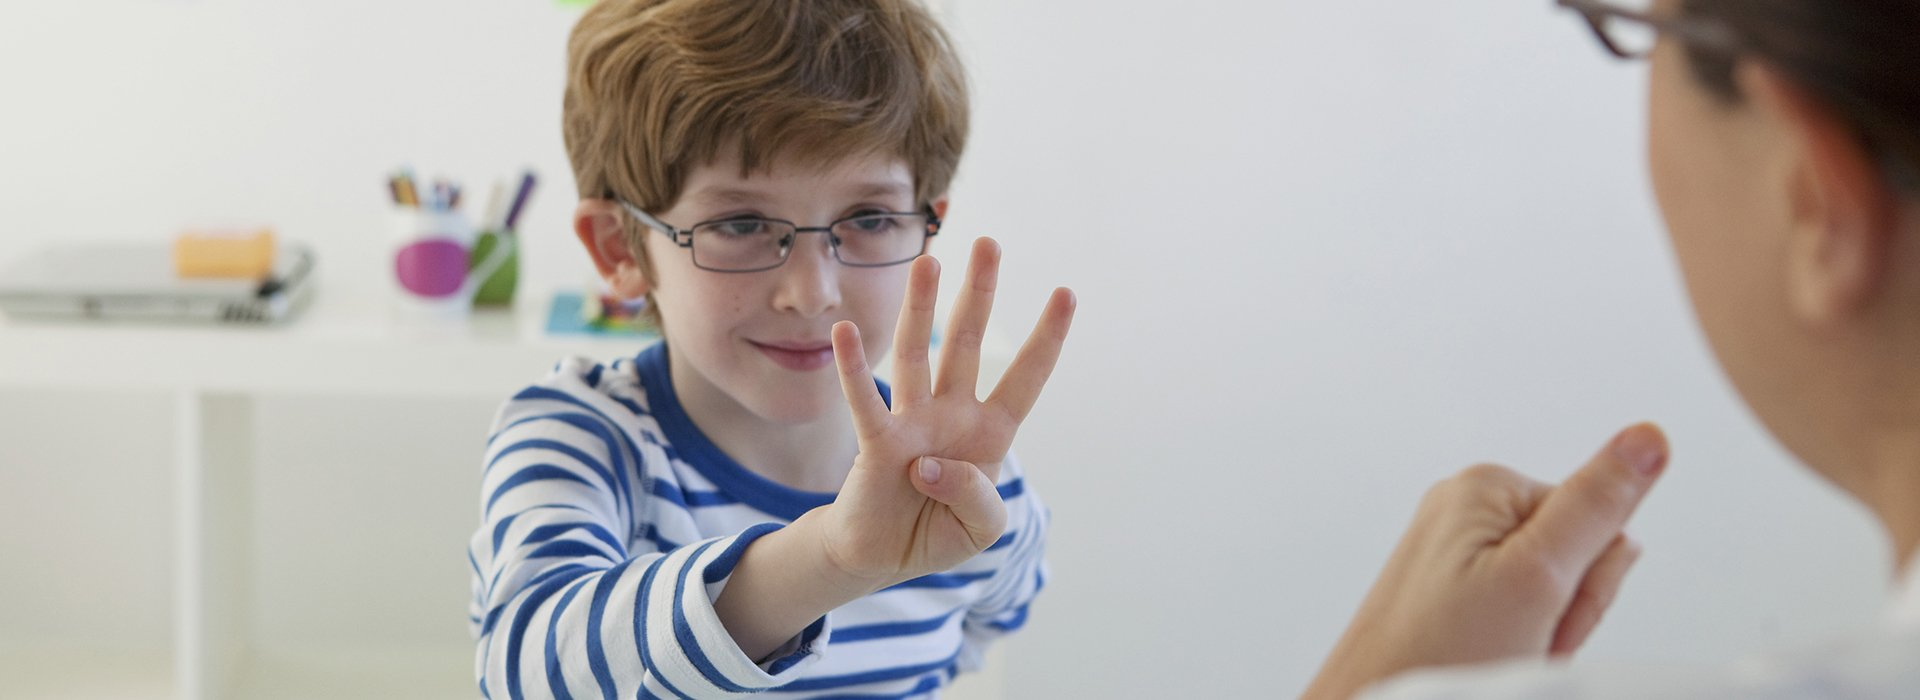 Boy learning to count